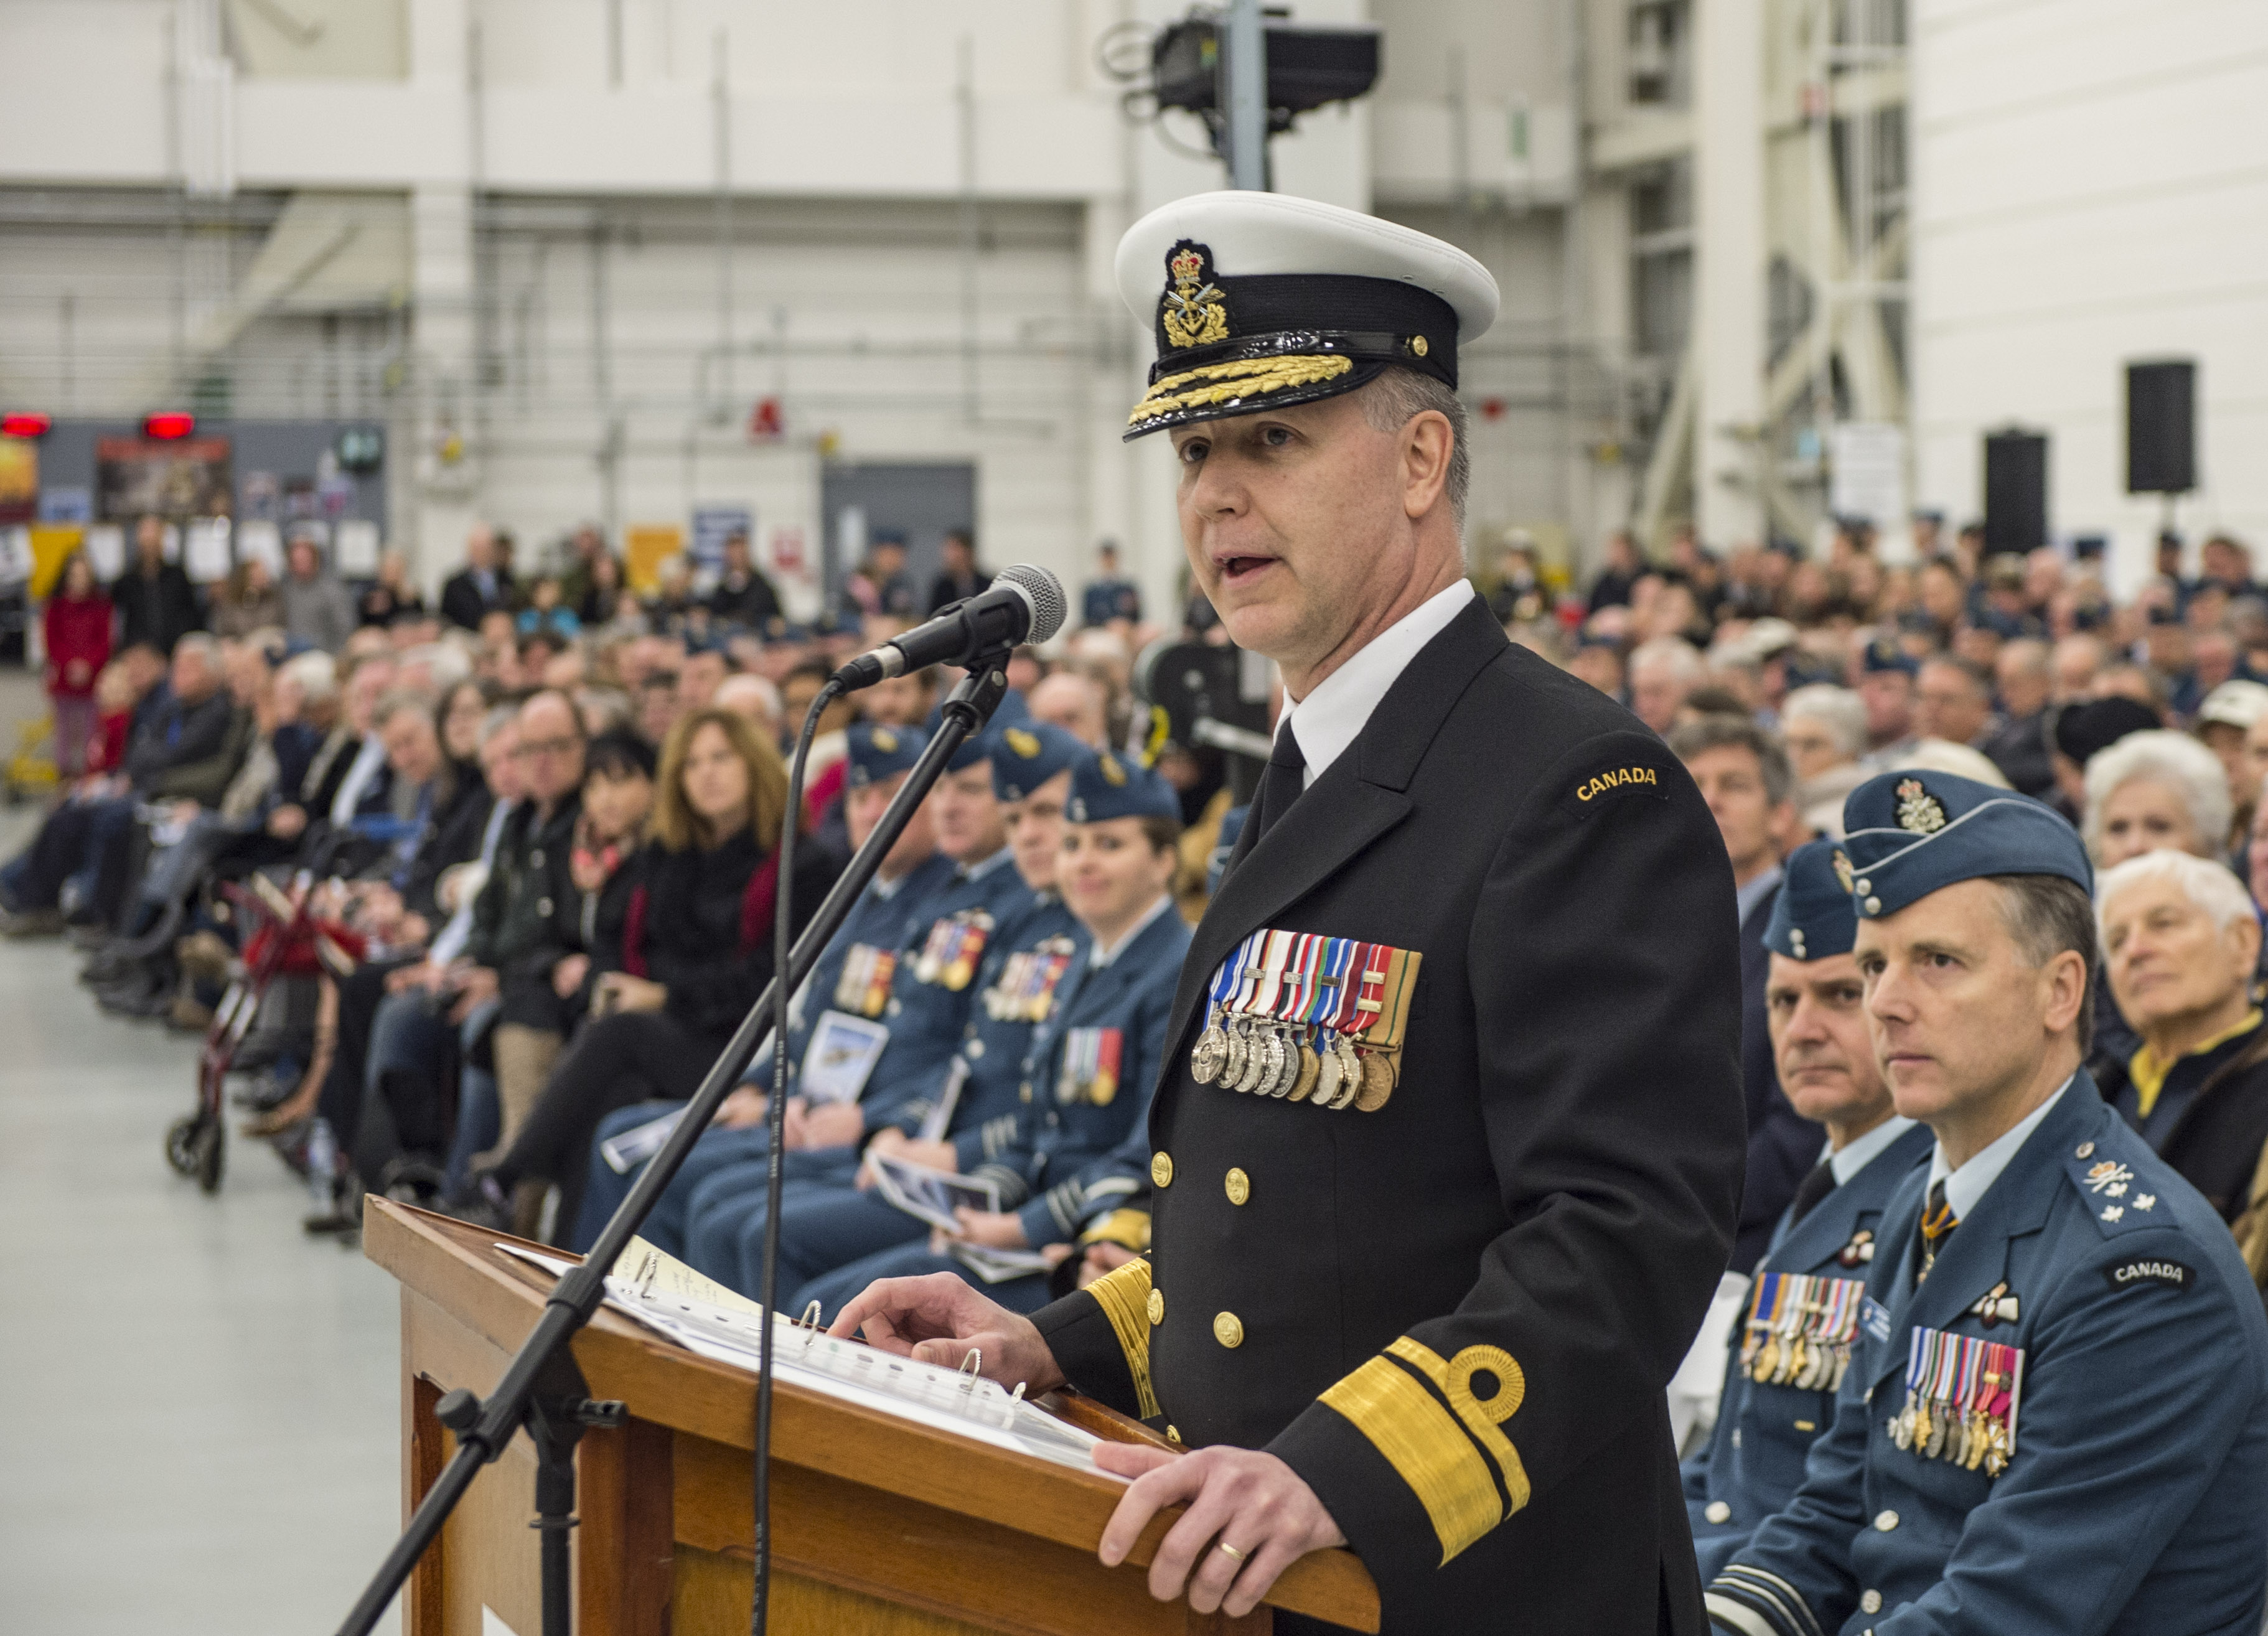 Rear-Admiral Art McDonald, deputy commander of the RCN, addresses aviators, sailors, and guests at the Sea King retirement ceremony on December 1, 2018. PHOTO: Leading Seaman Laurance Clarke, SW05-2018-0497-670